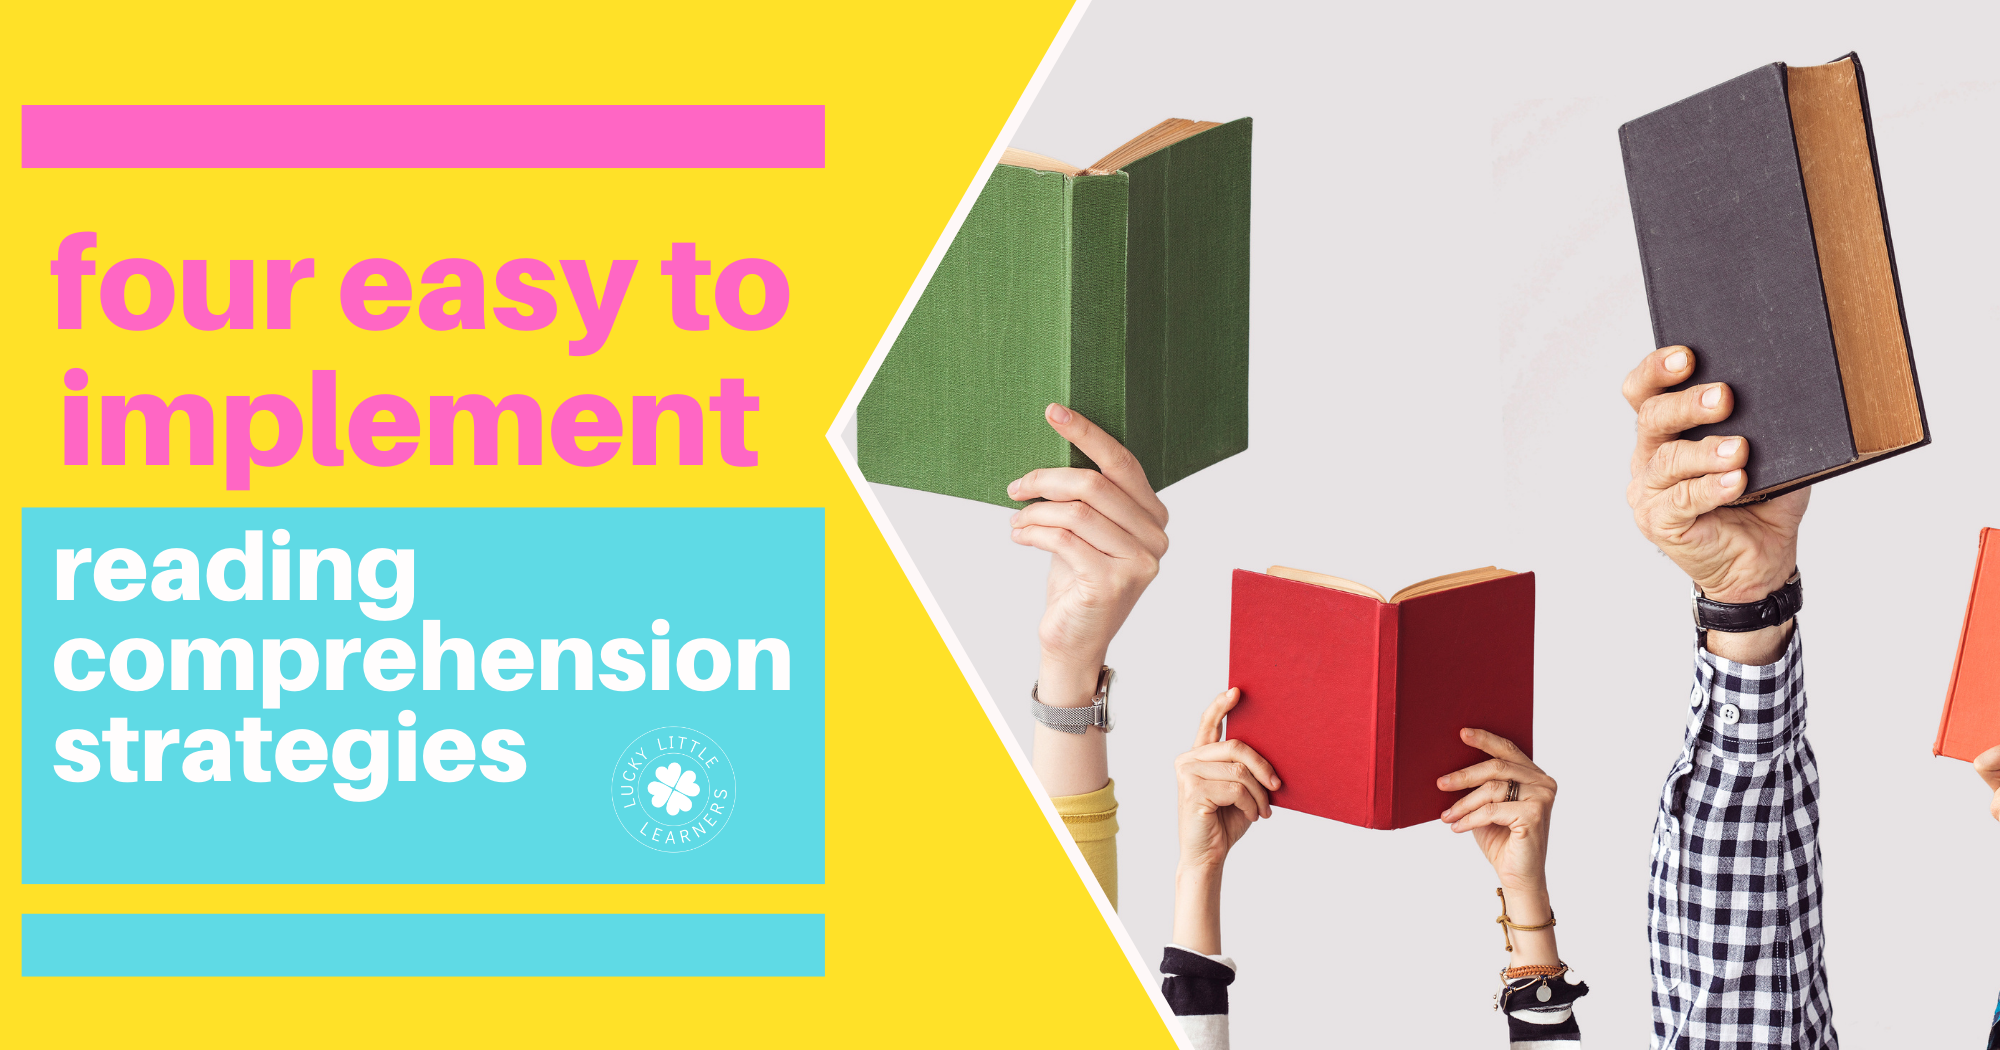 4 Easy to Implement Reading Comprehension Strategies